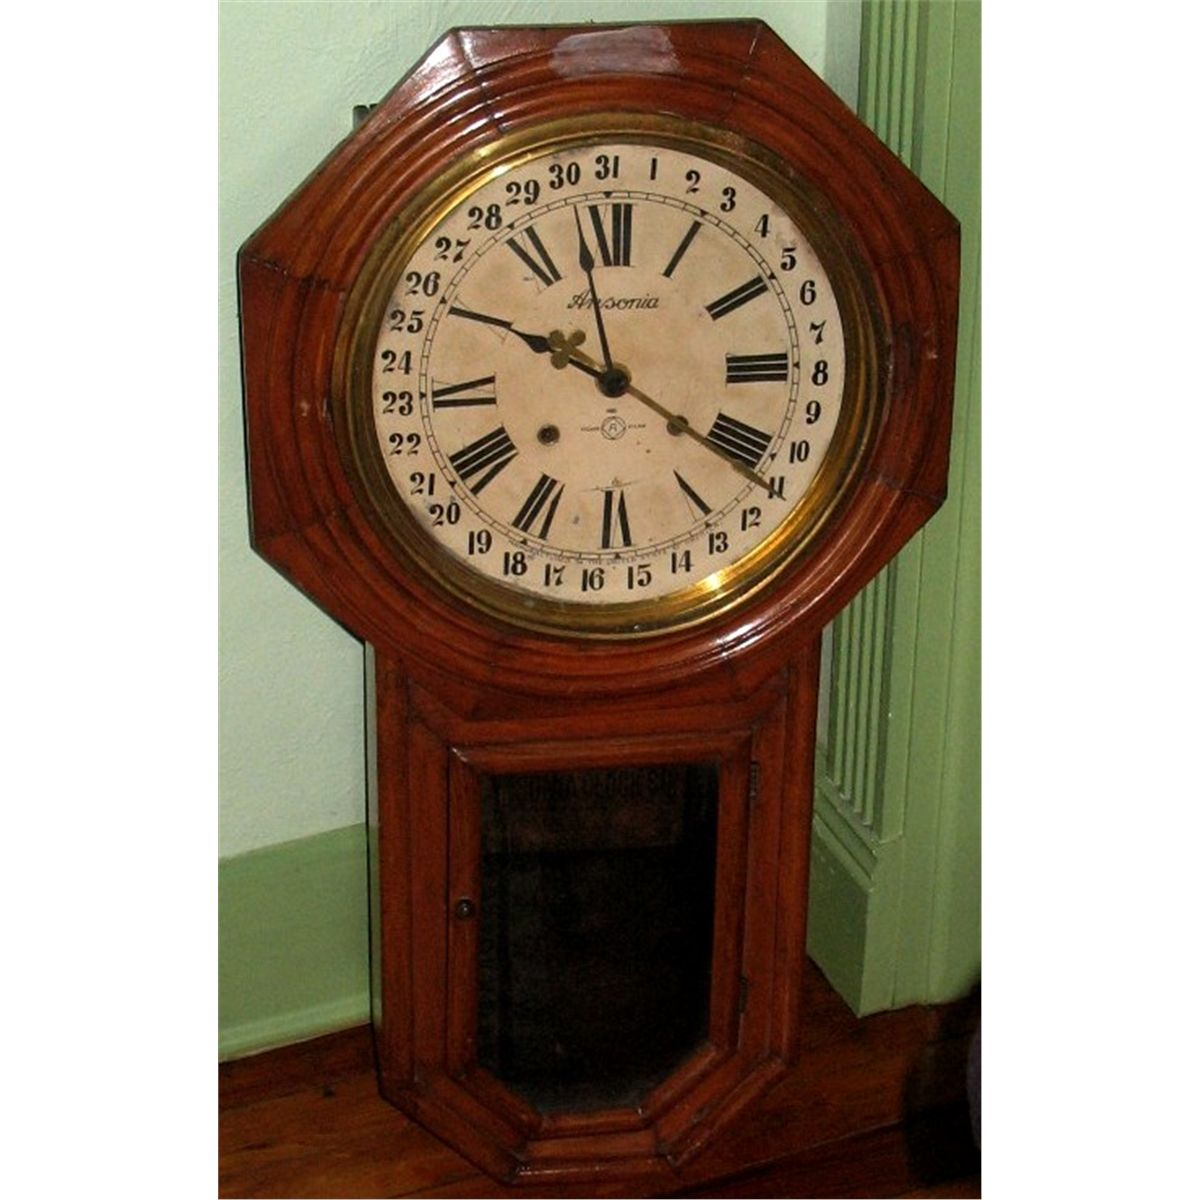 Dating Antique Clocks